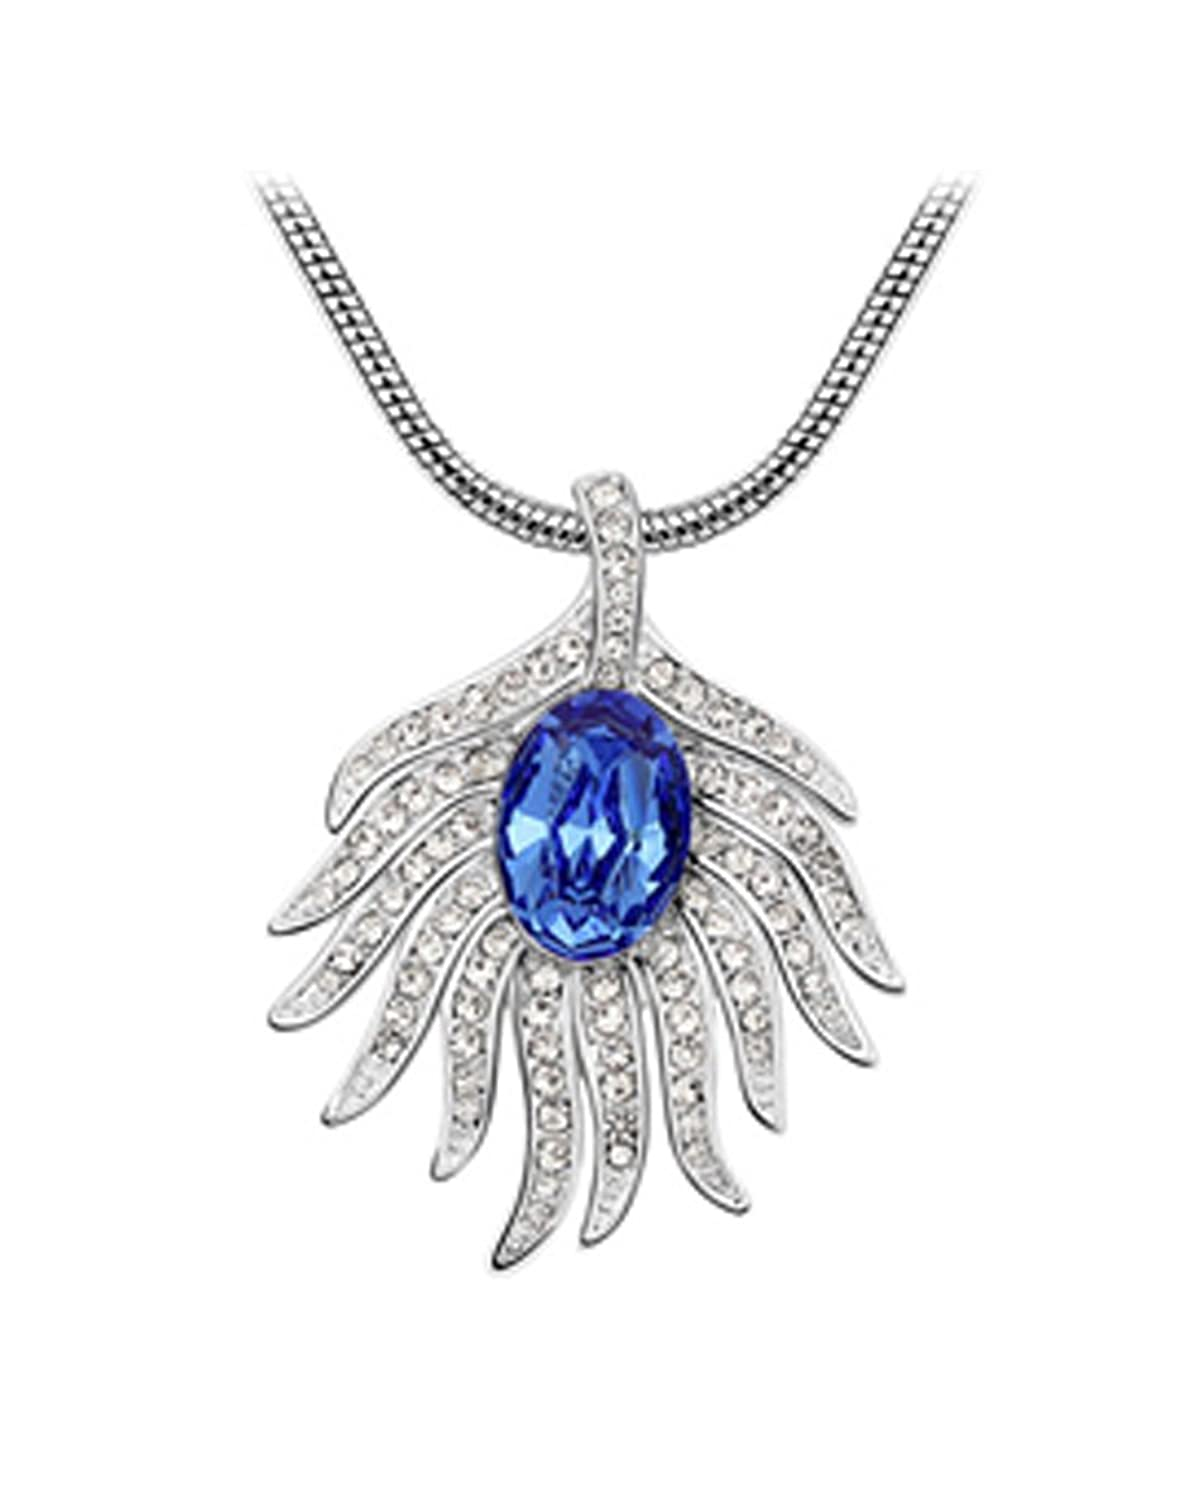 Blue Leaf Cubic Zircon Pendant Necklace Made With Swarovski Elements 18k White Gold Plated